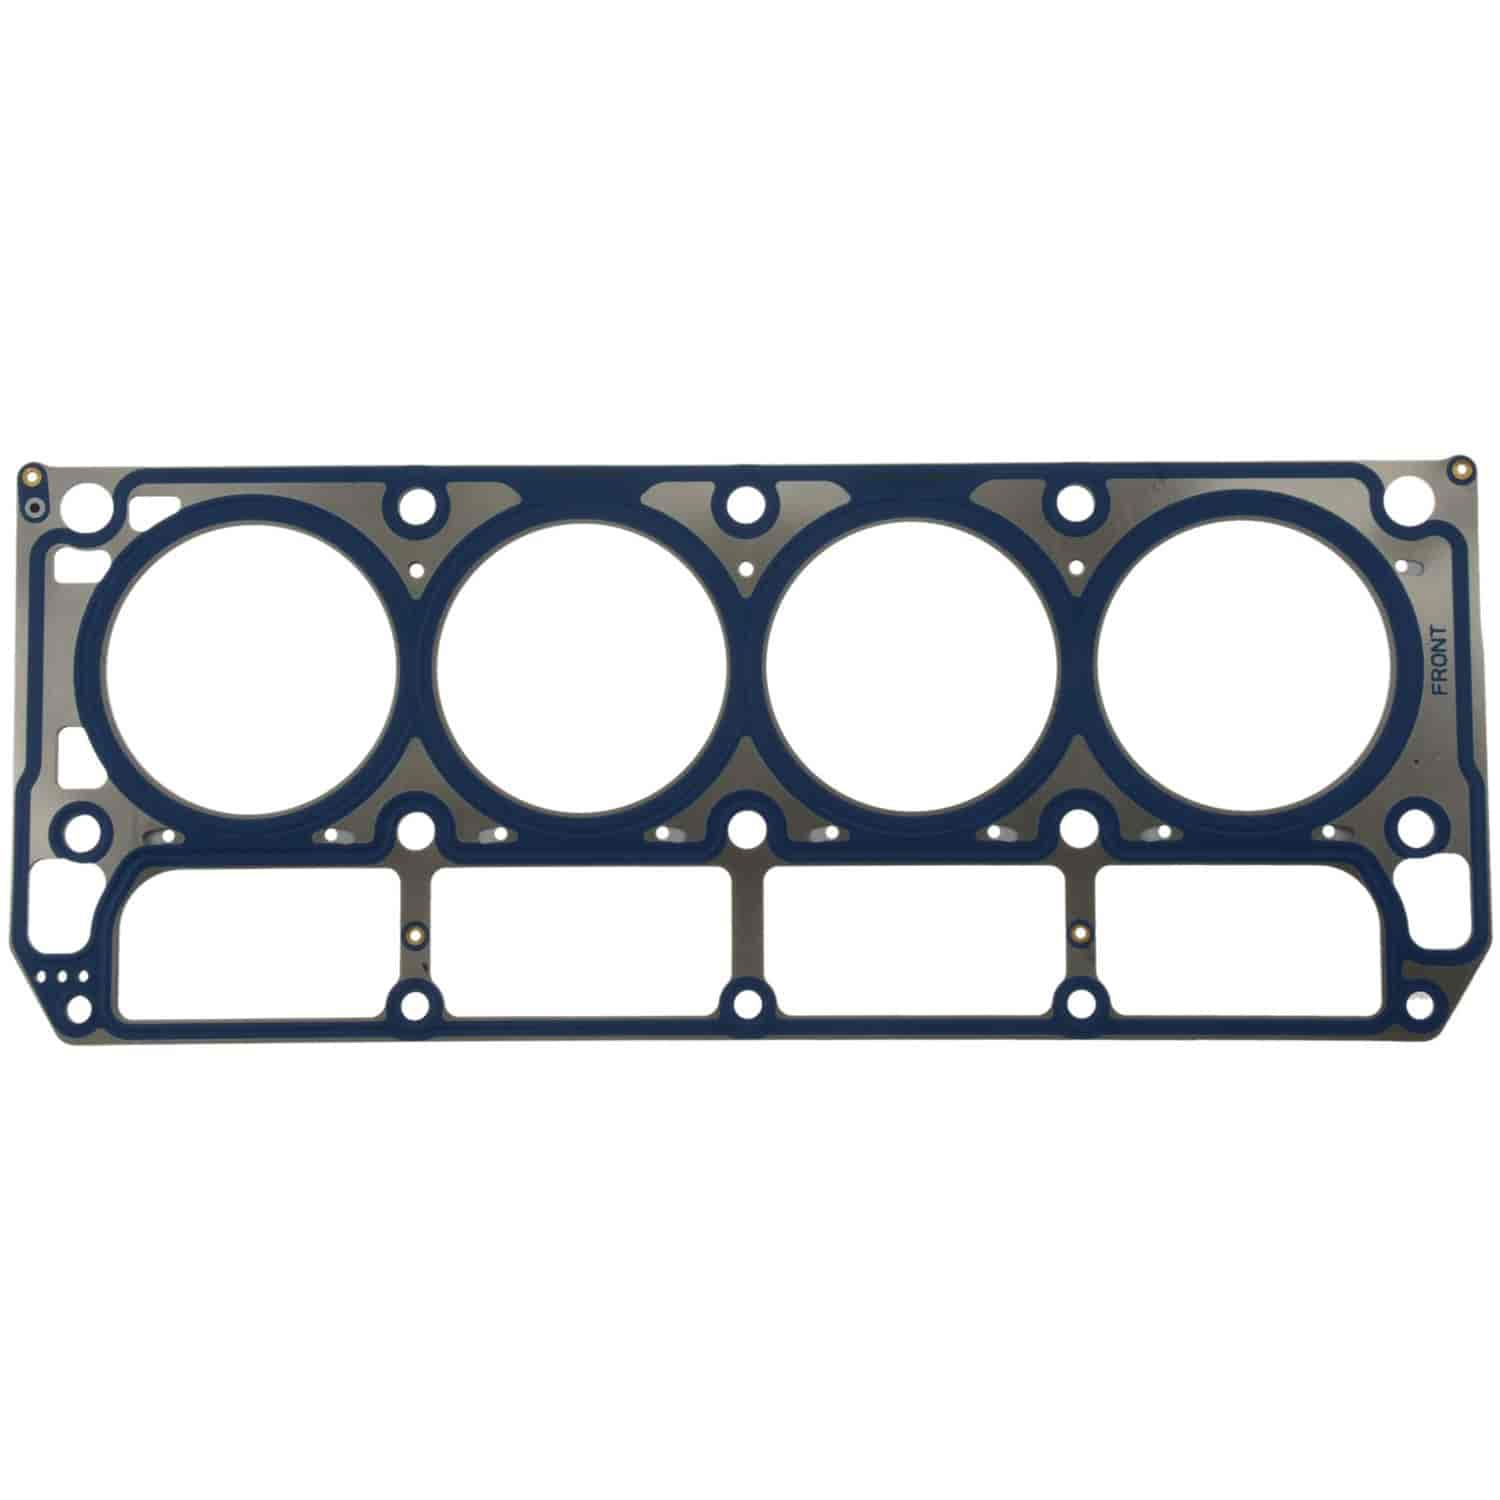 1999 Ford Econoline E150 Cargo Head Gasket: Clevite MAHLE 54441: Cylinder Head Gasket 1999-2007 Chevy